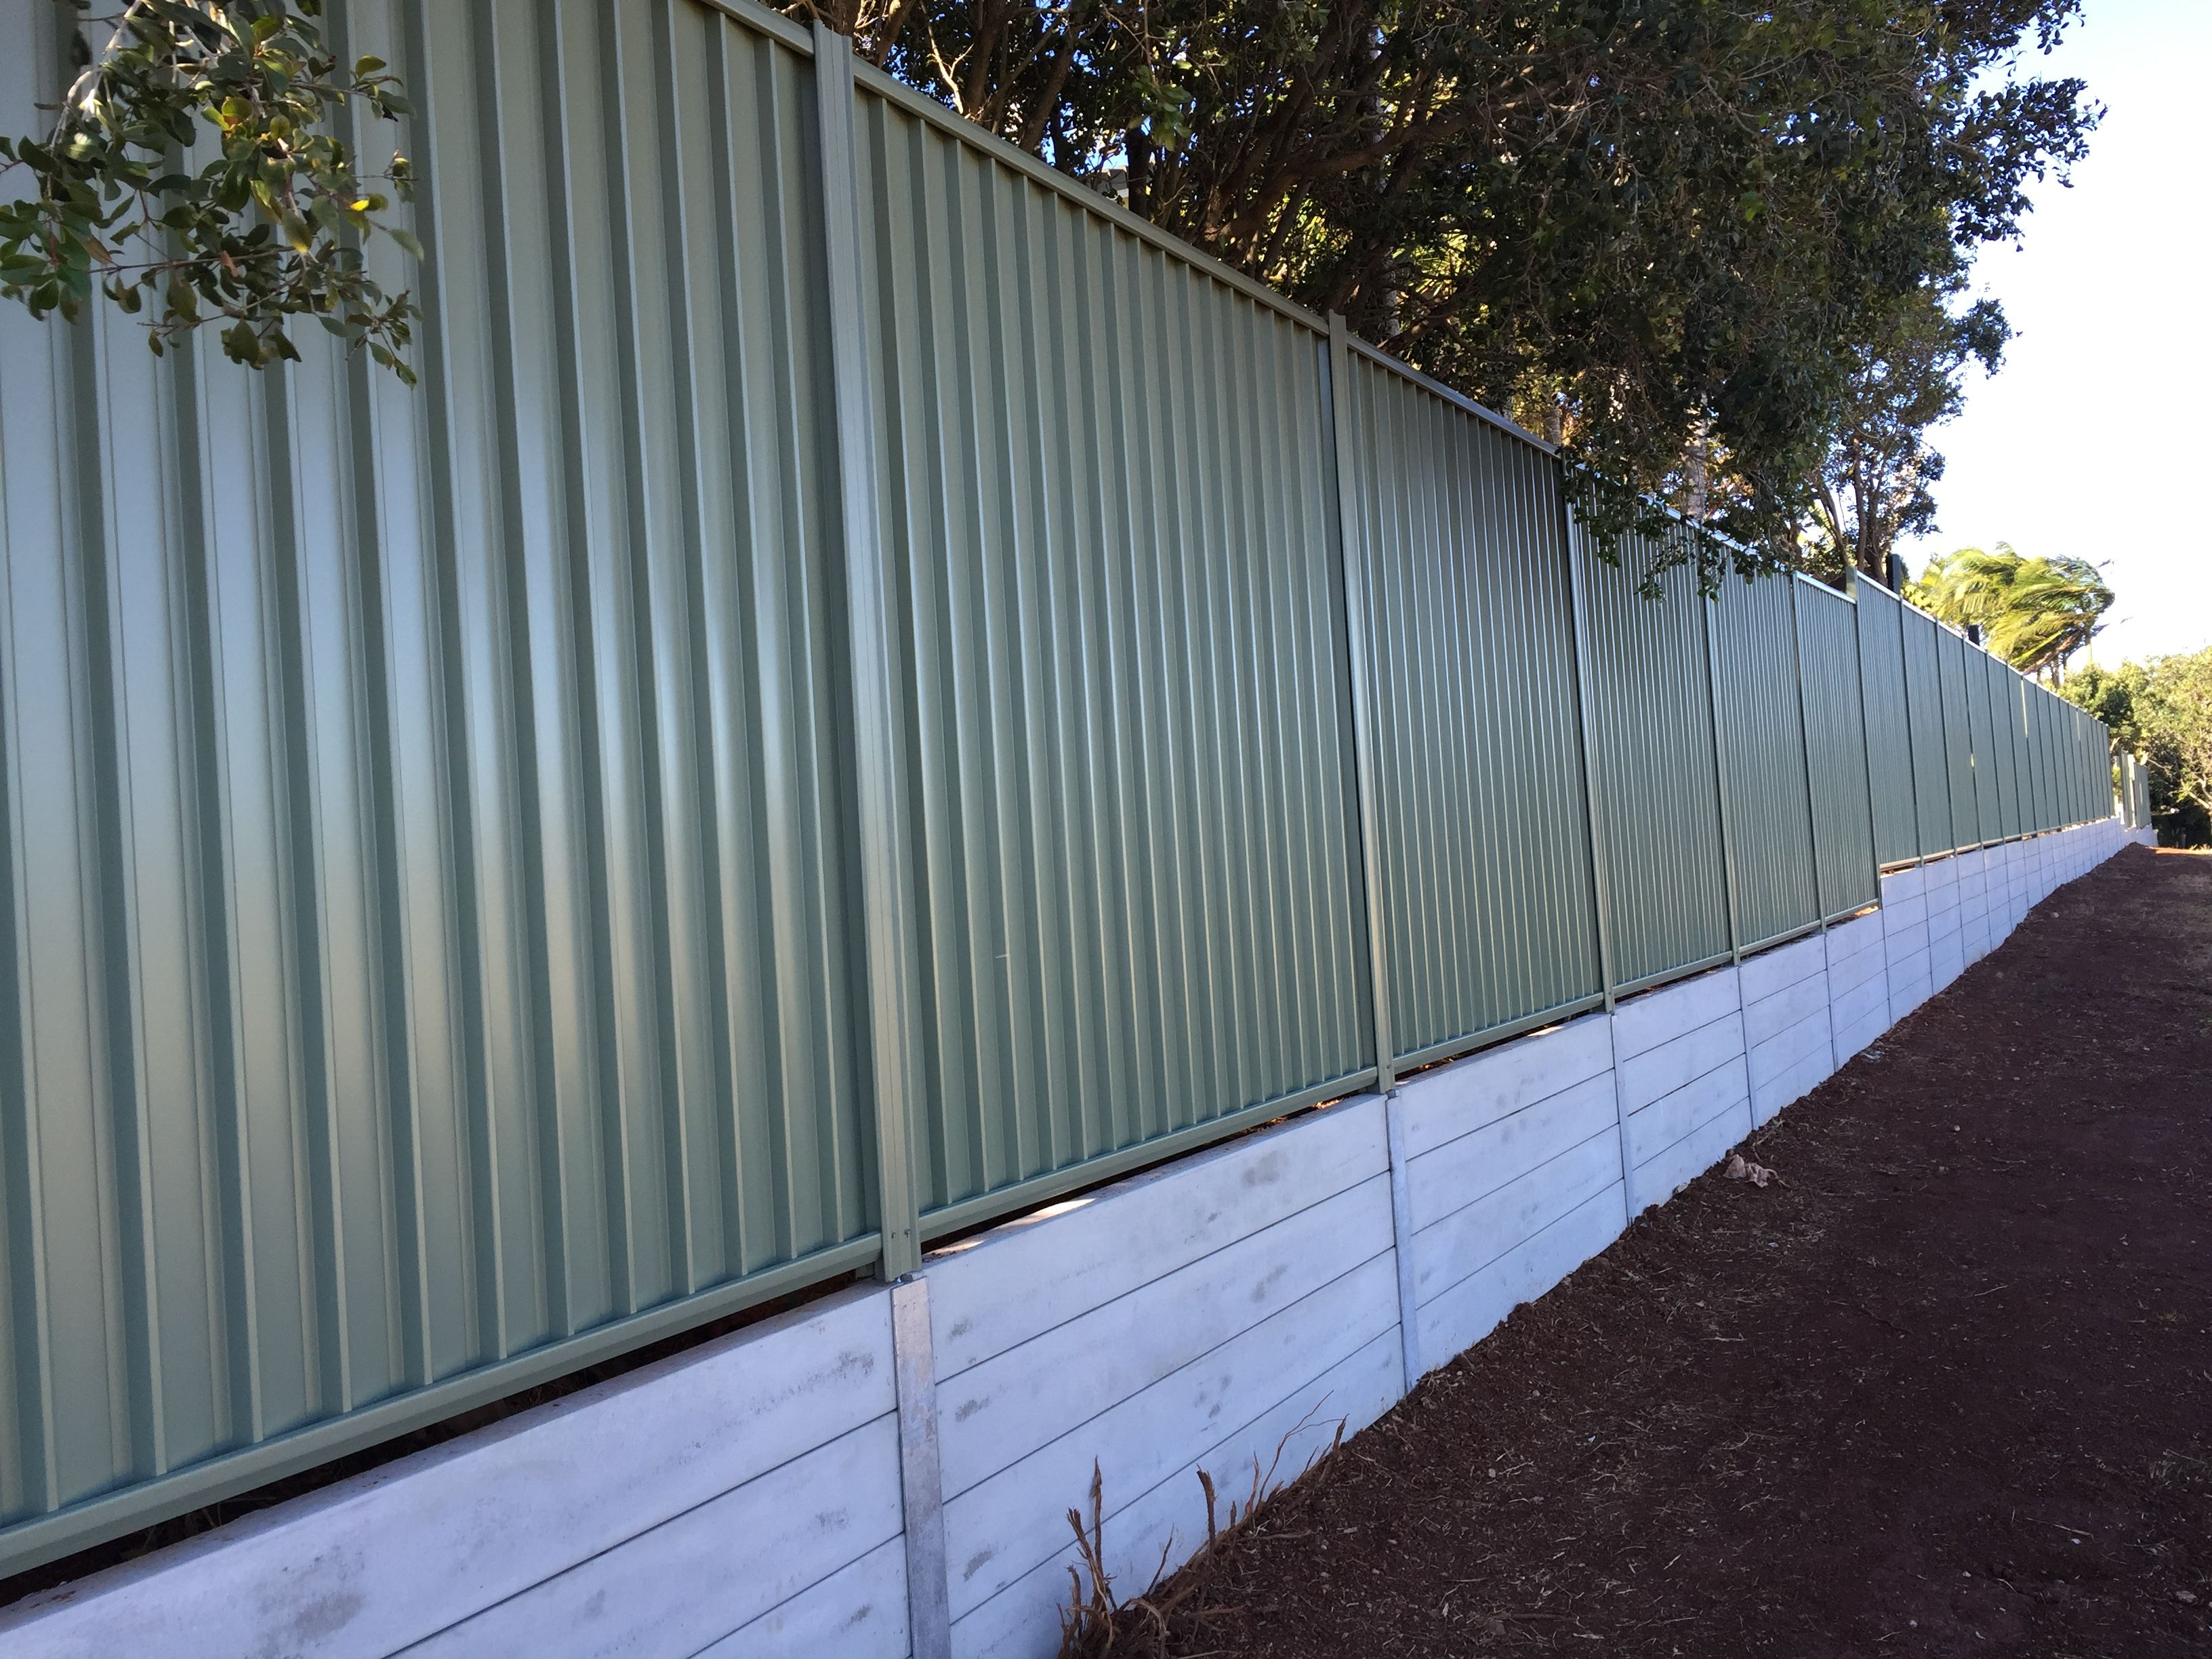 Recently Completed Northbond Colourbond Fencing And Concrete Sleeper Retaining Wall At Aspley Concrete Sleepers Retaining Wall Concrete Sleeper Retaining Walls